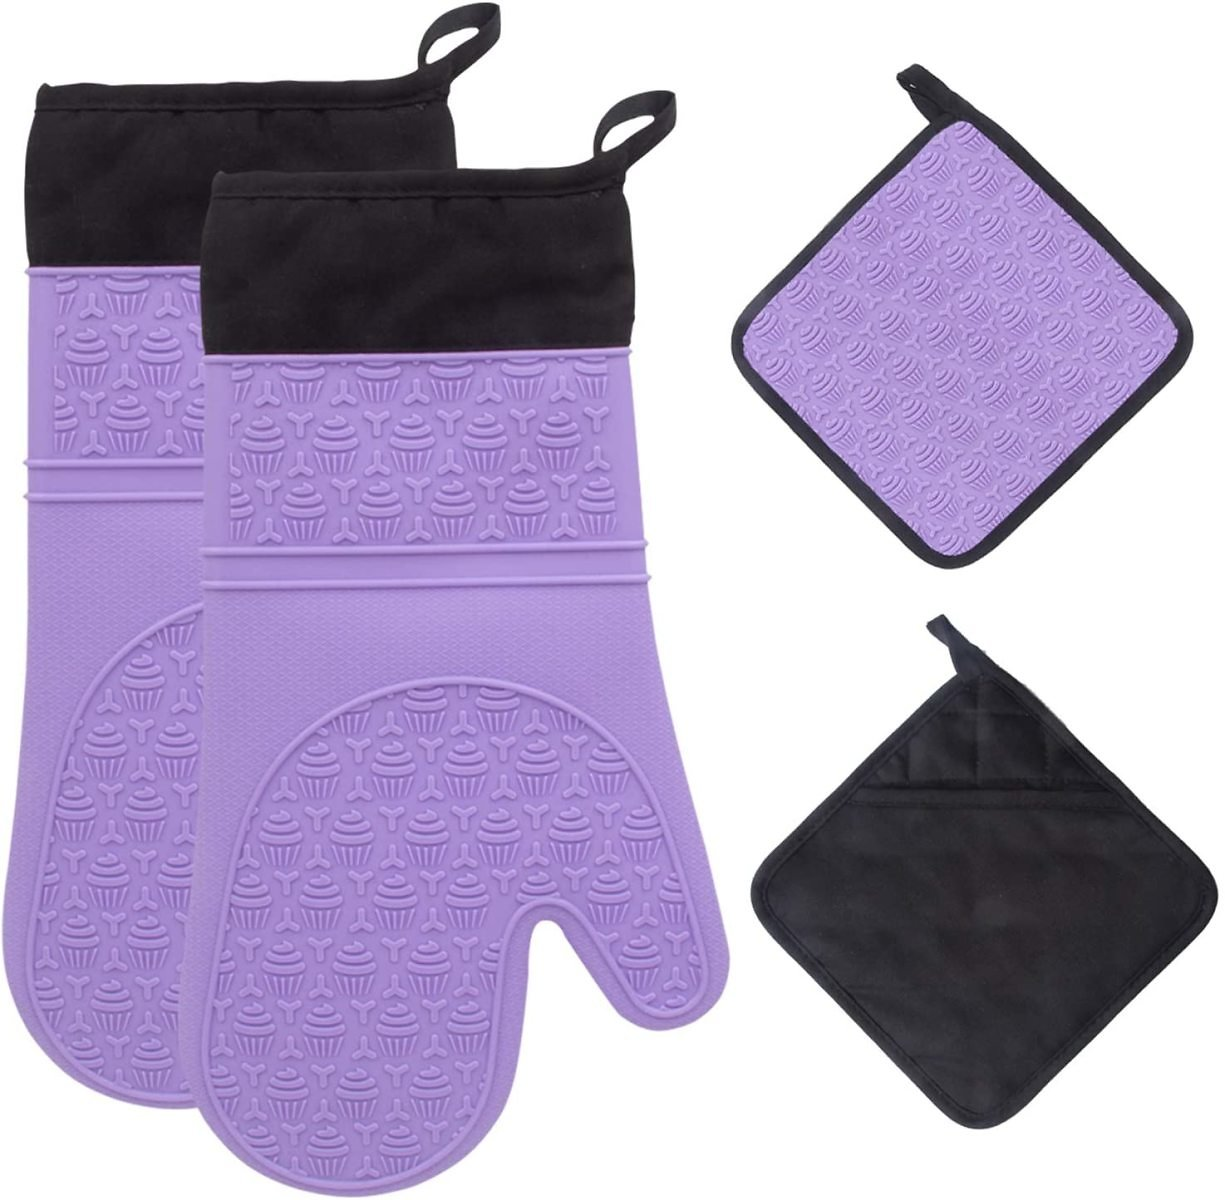 Silicone Oven Mitts and Pot Holders Set 500 F Heat Resistant Oven Gloves Flexible for Kitchen Cooking